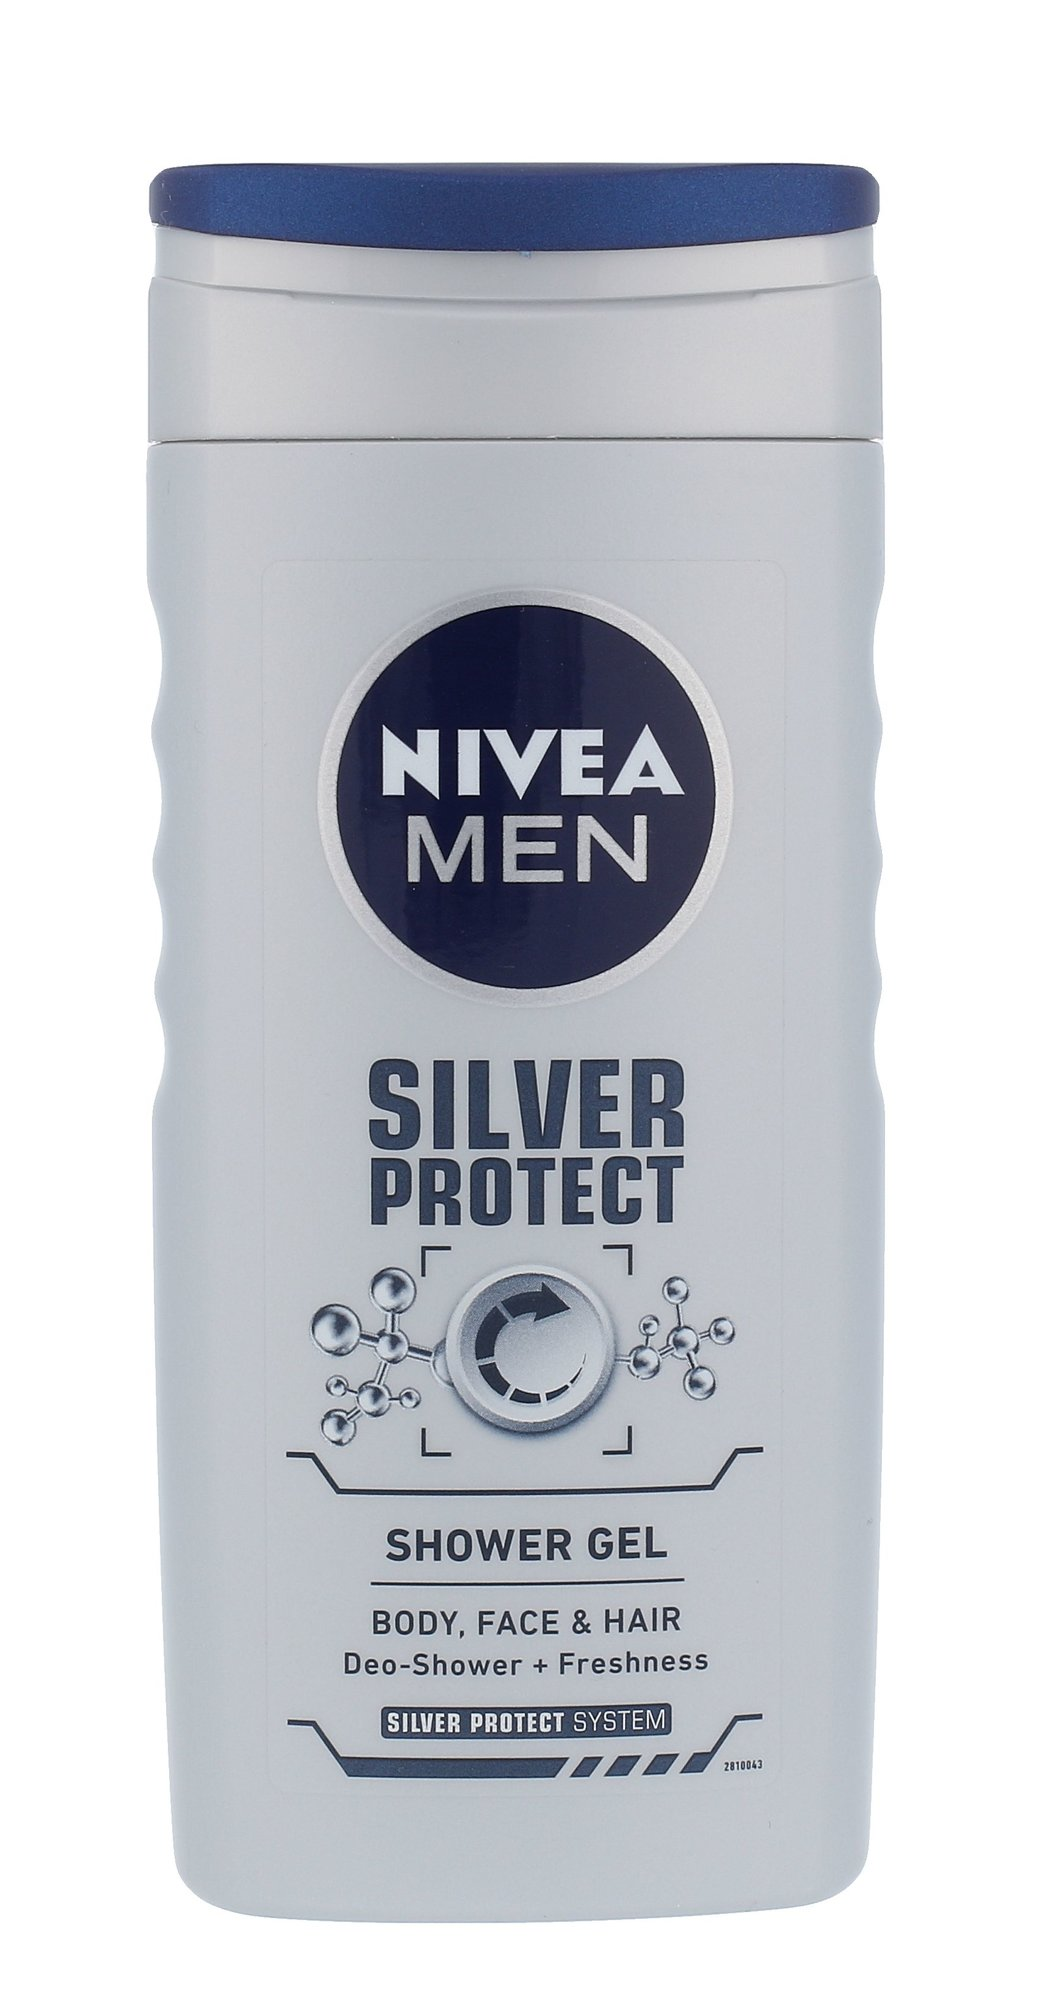 Nivea Men Silver Protect Cosmetic 250ml